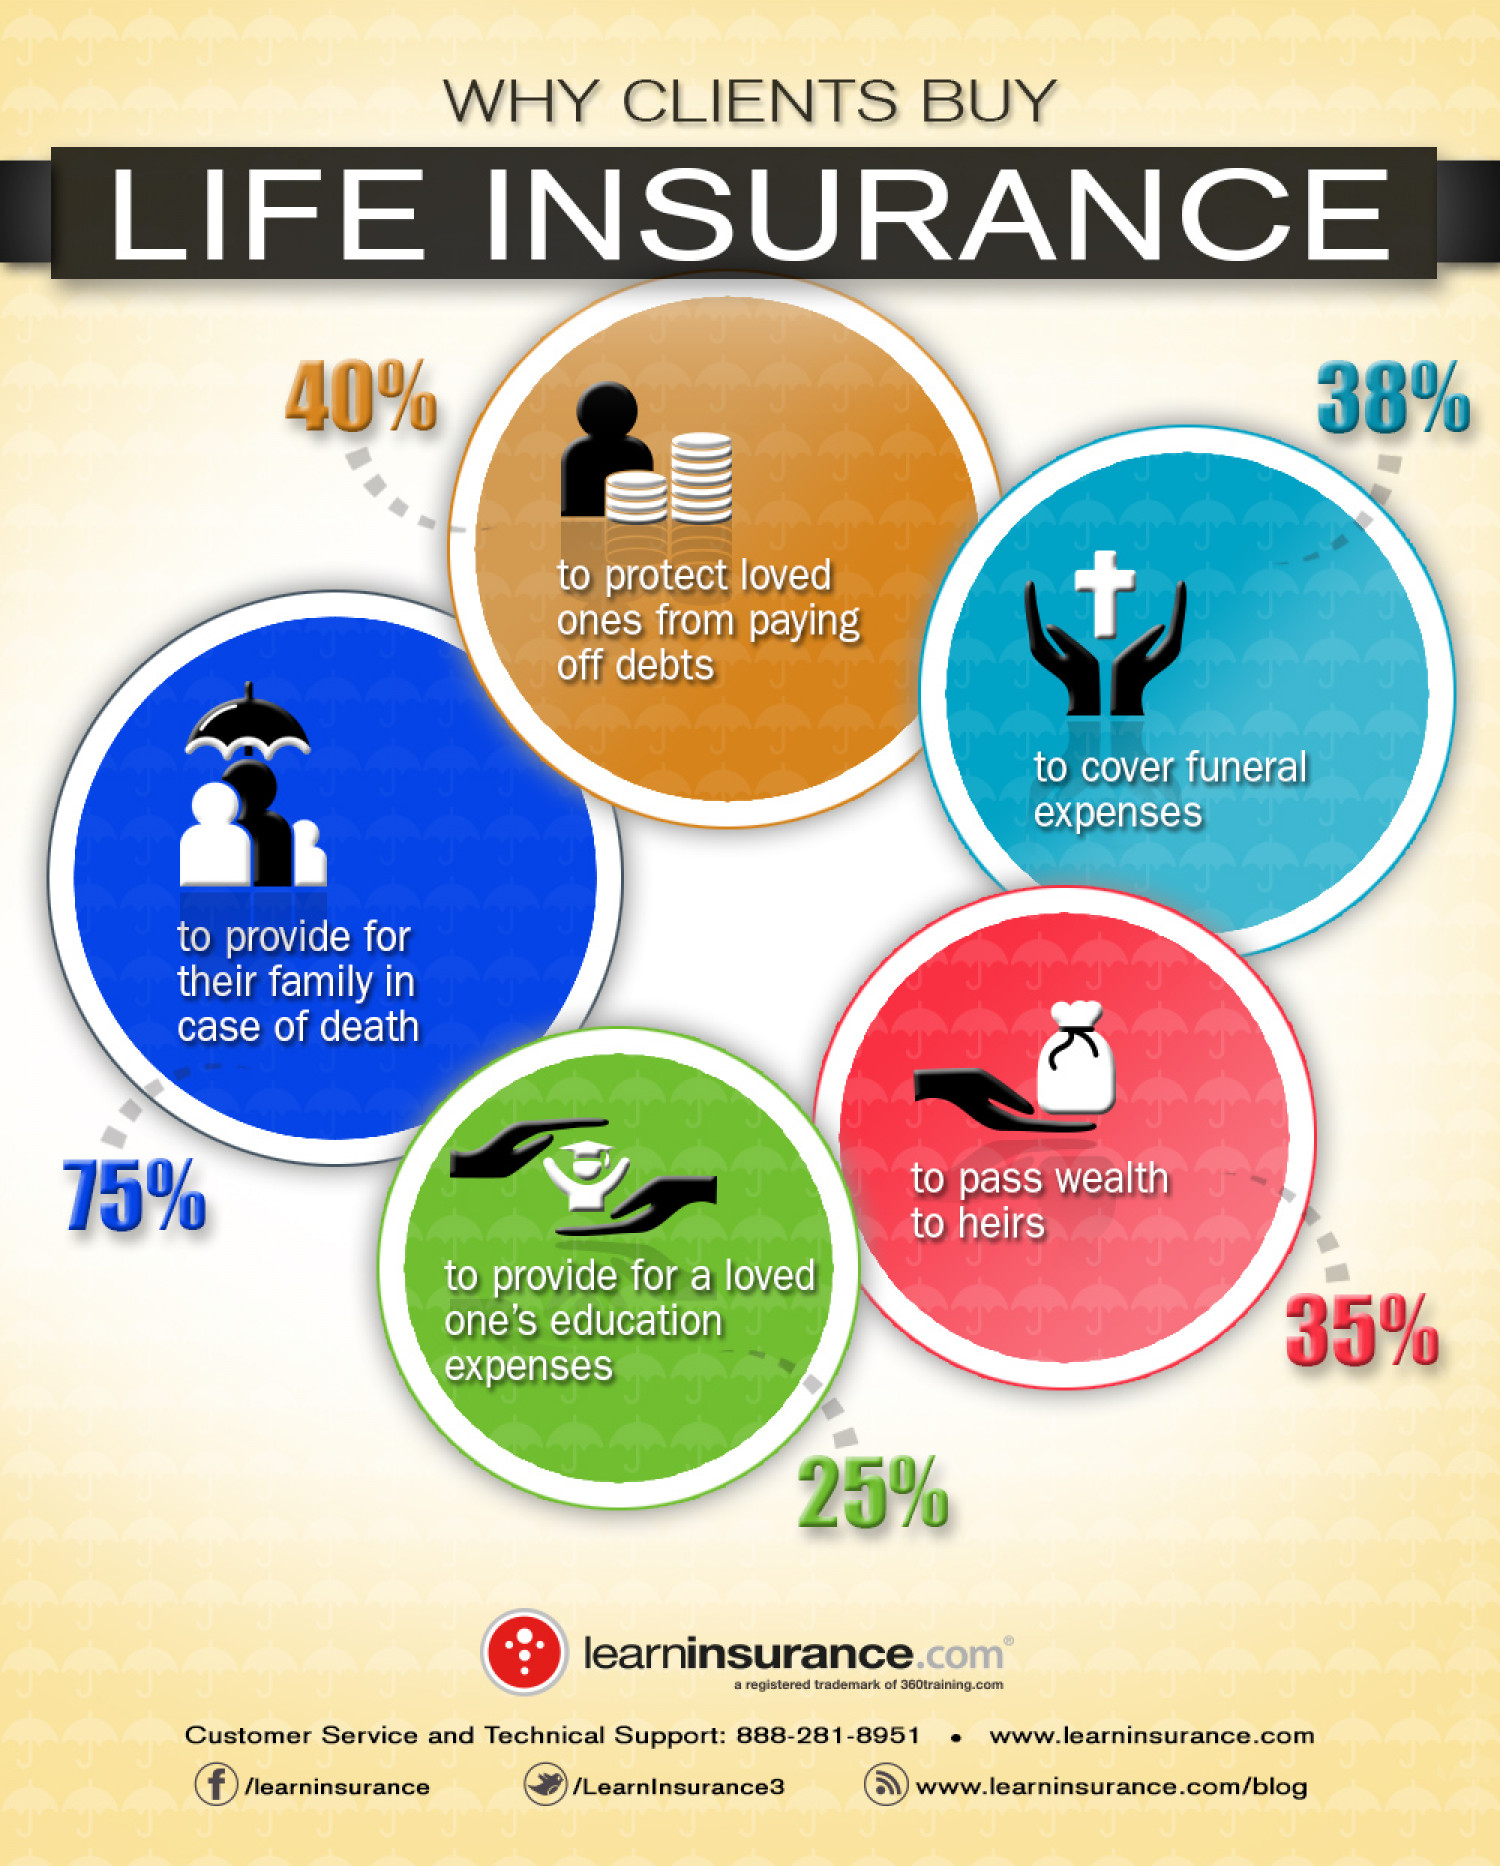 Why Clients Buy Life Insurance